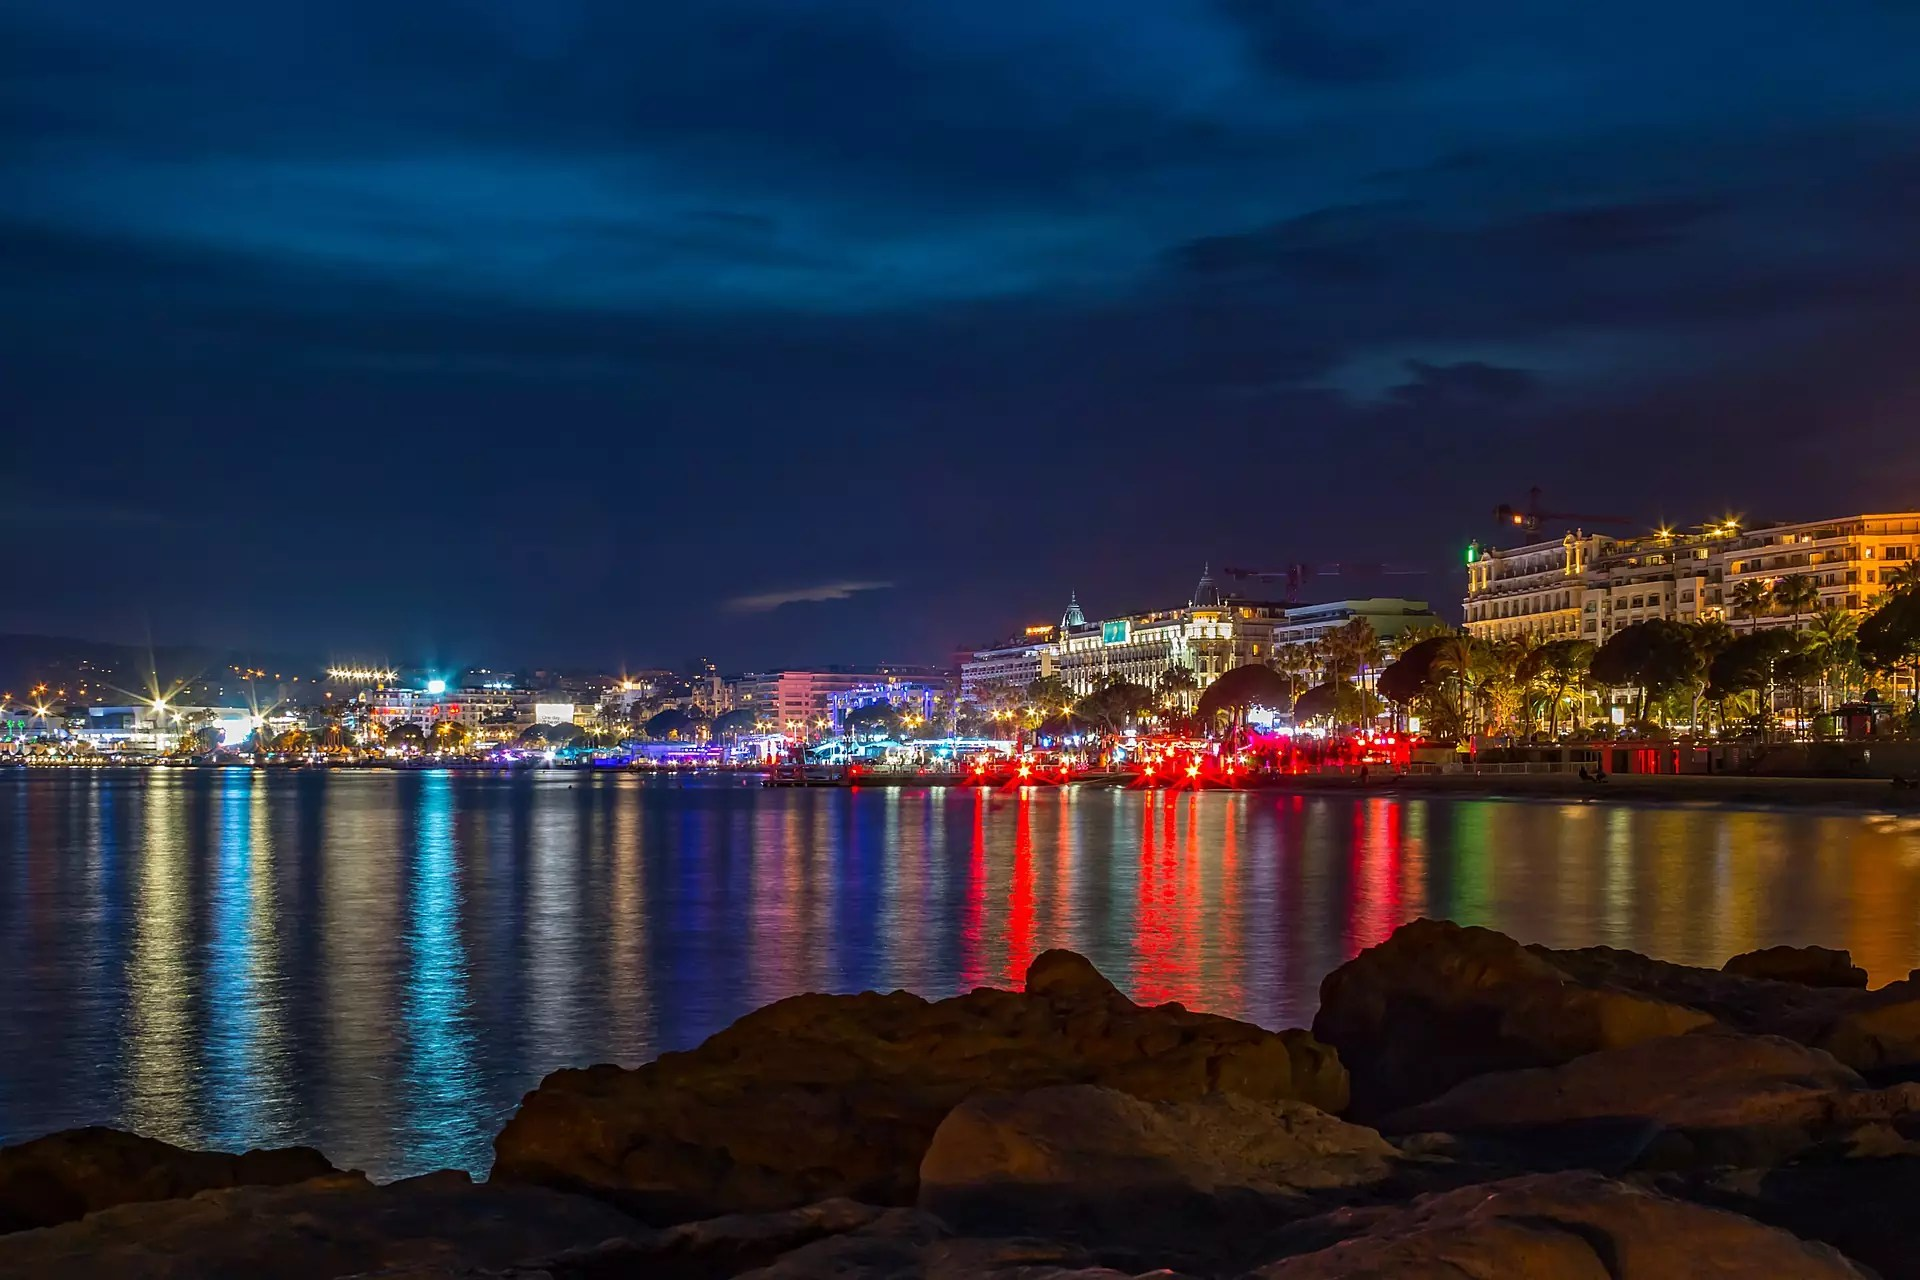 Cannes shoreline at night - photo by Sandra Wagner from Pixabay under Pixabay License